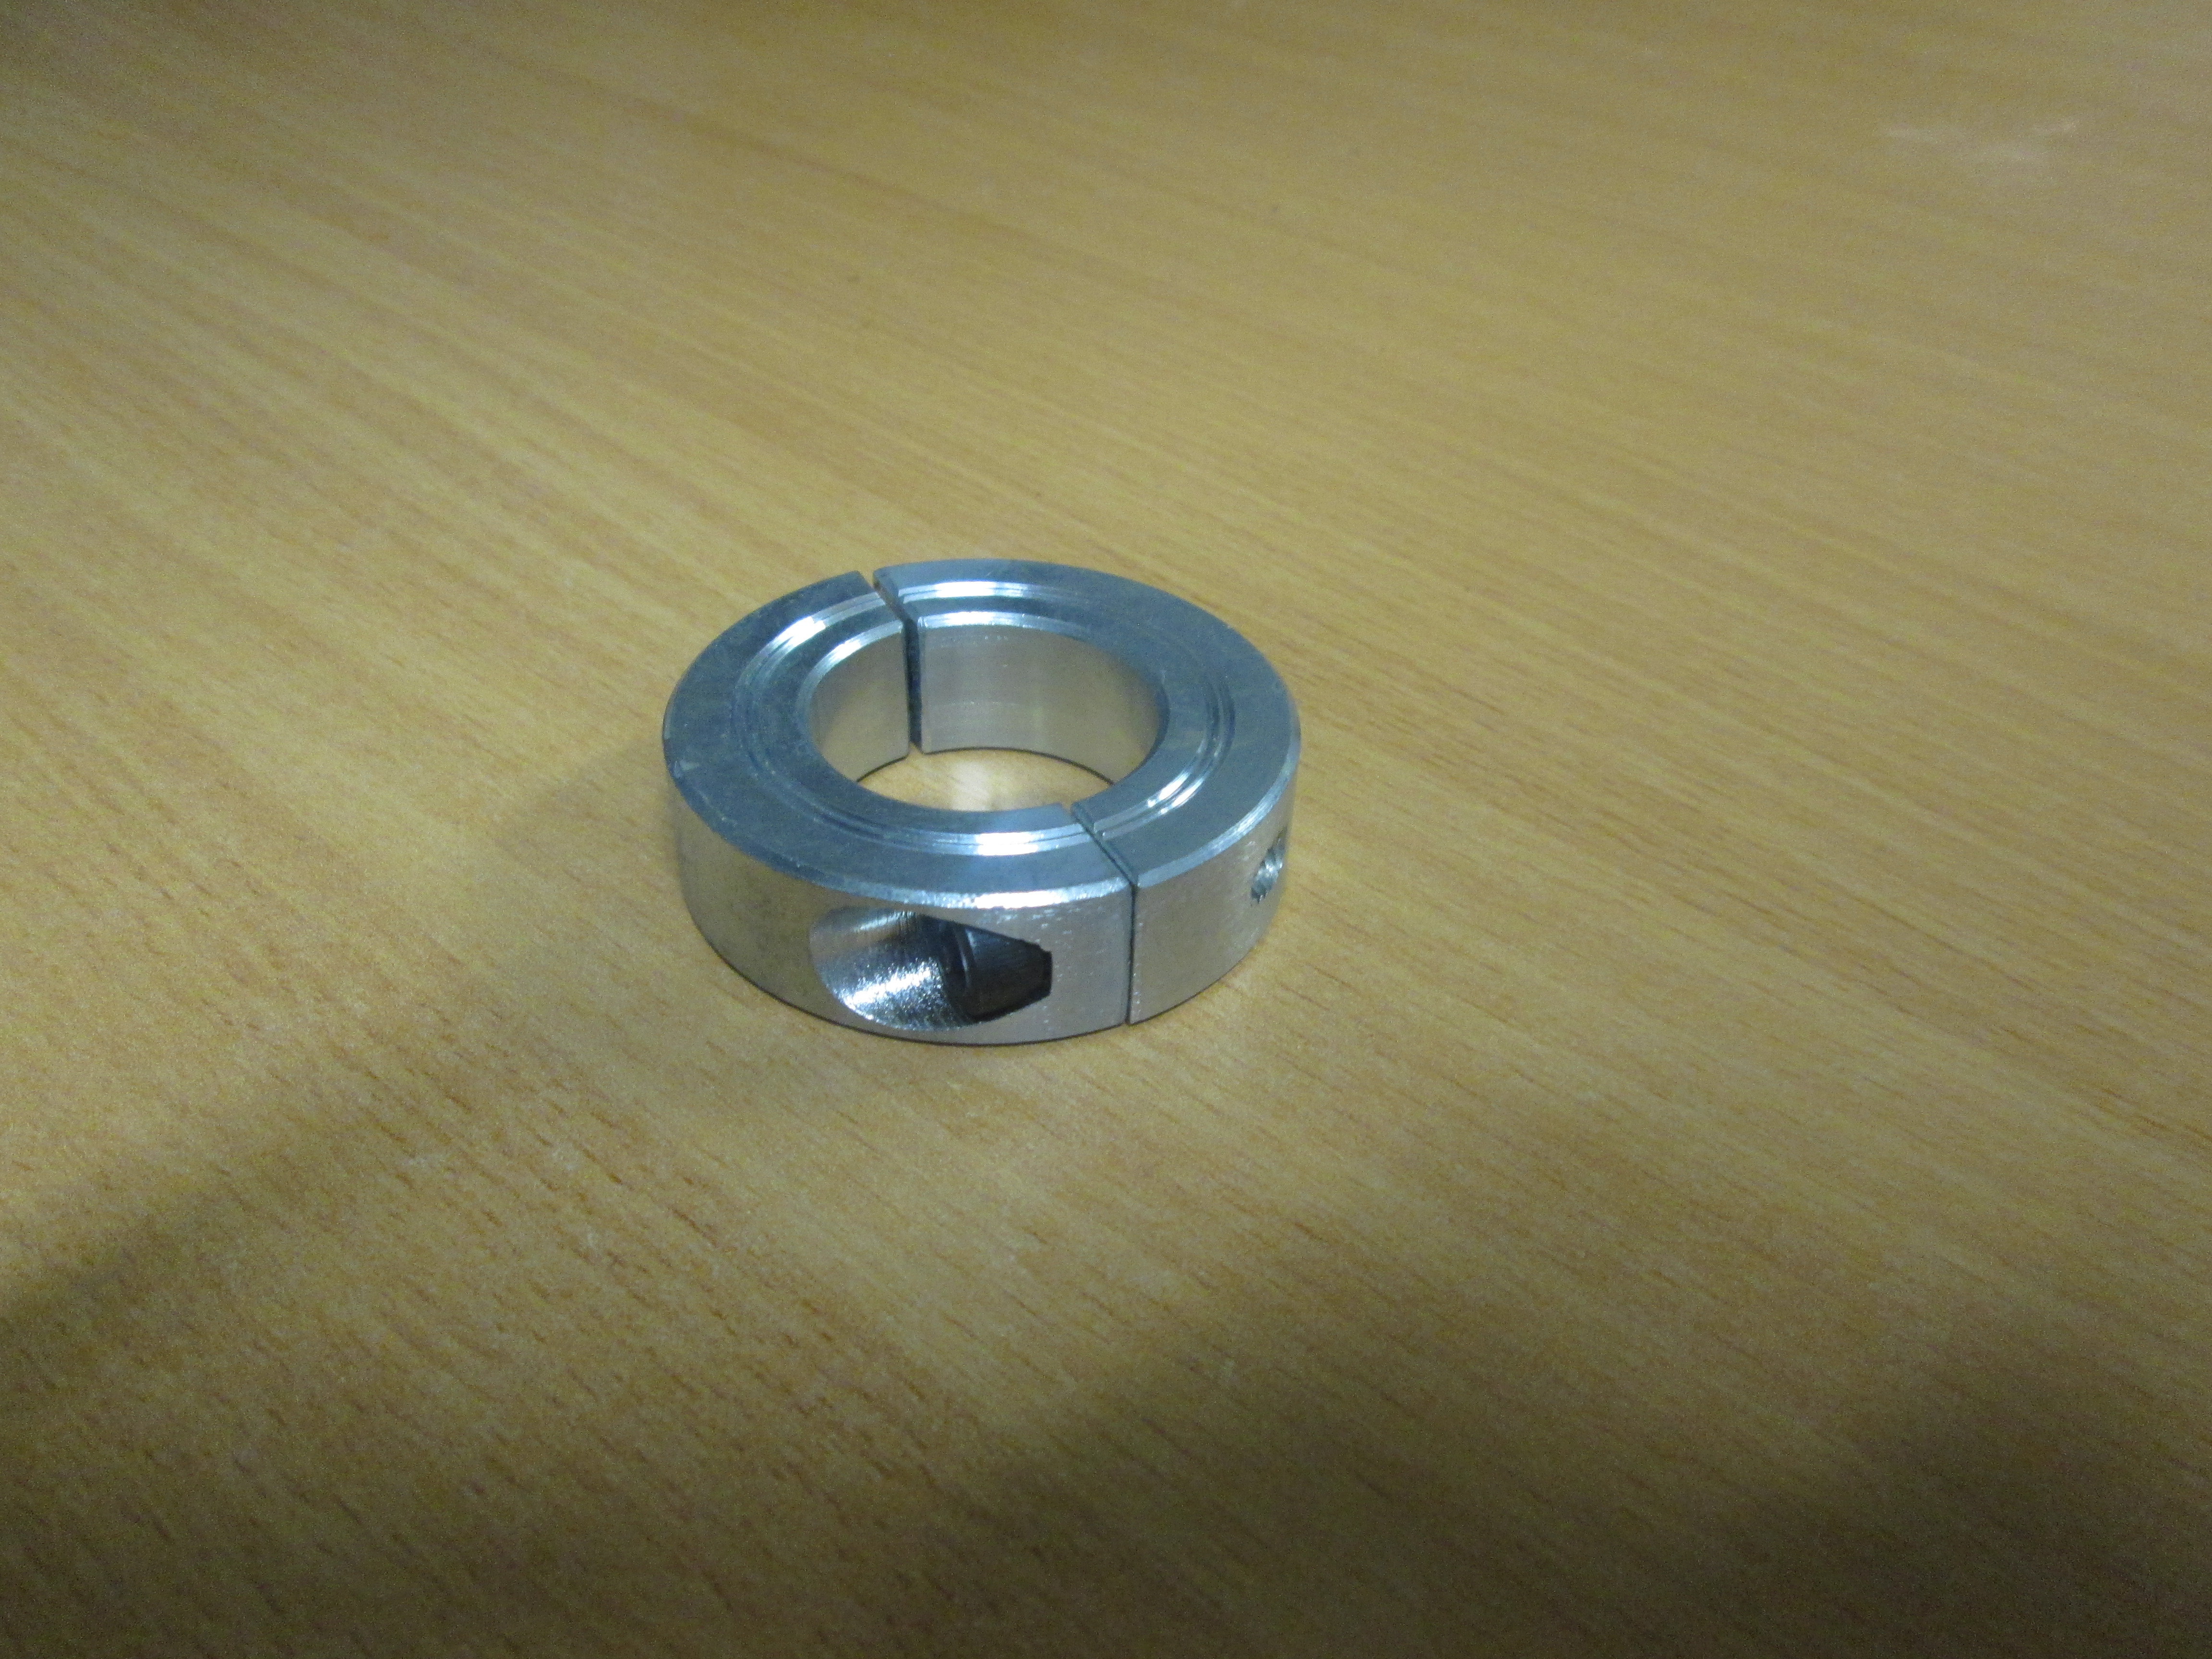 Two Piece Split Collar Clamp 35mm x 56mm x 16mm